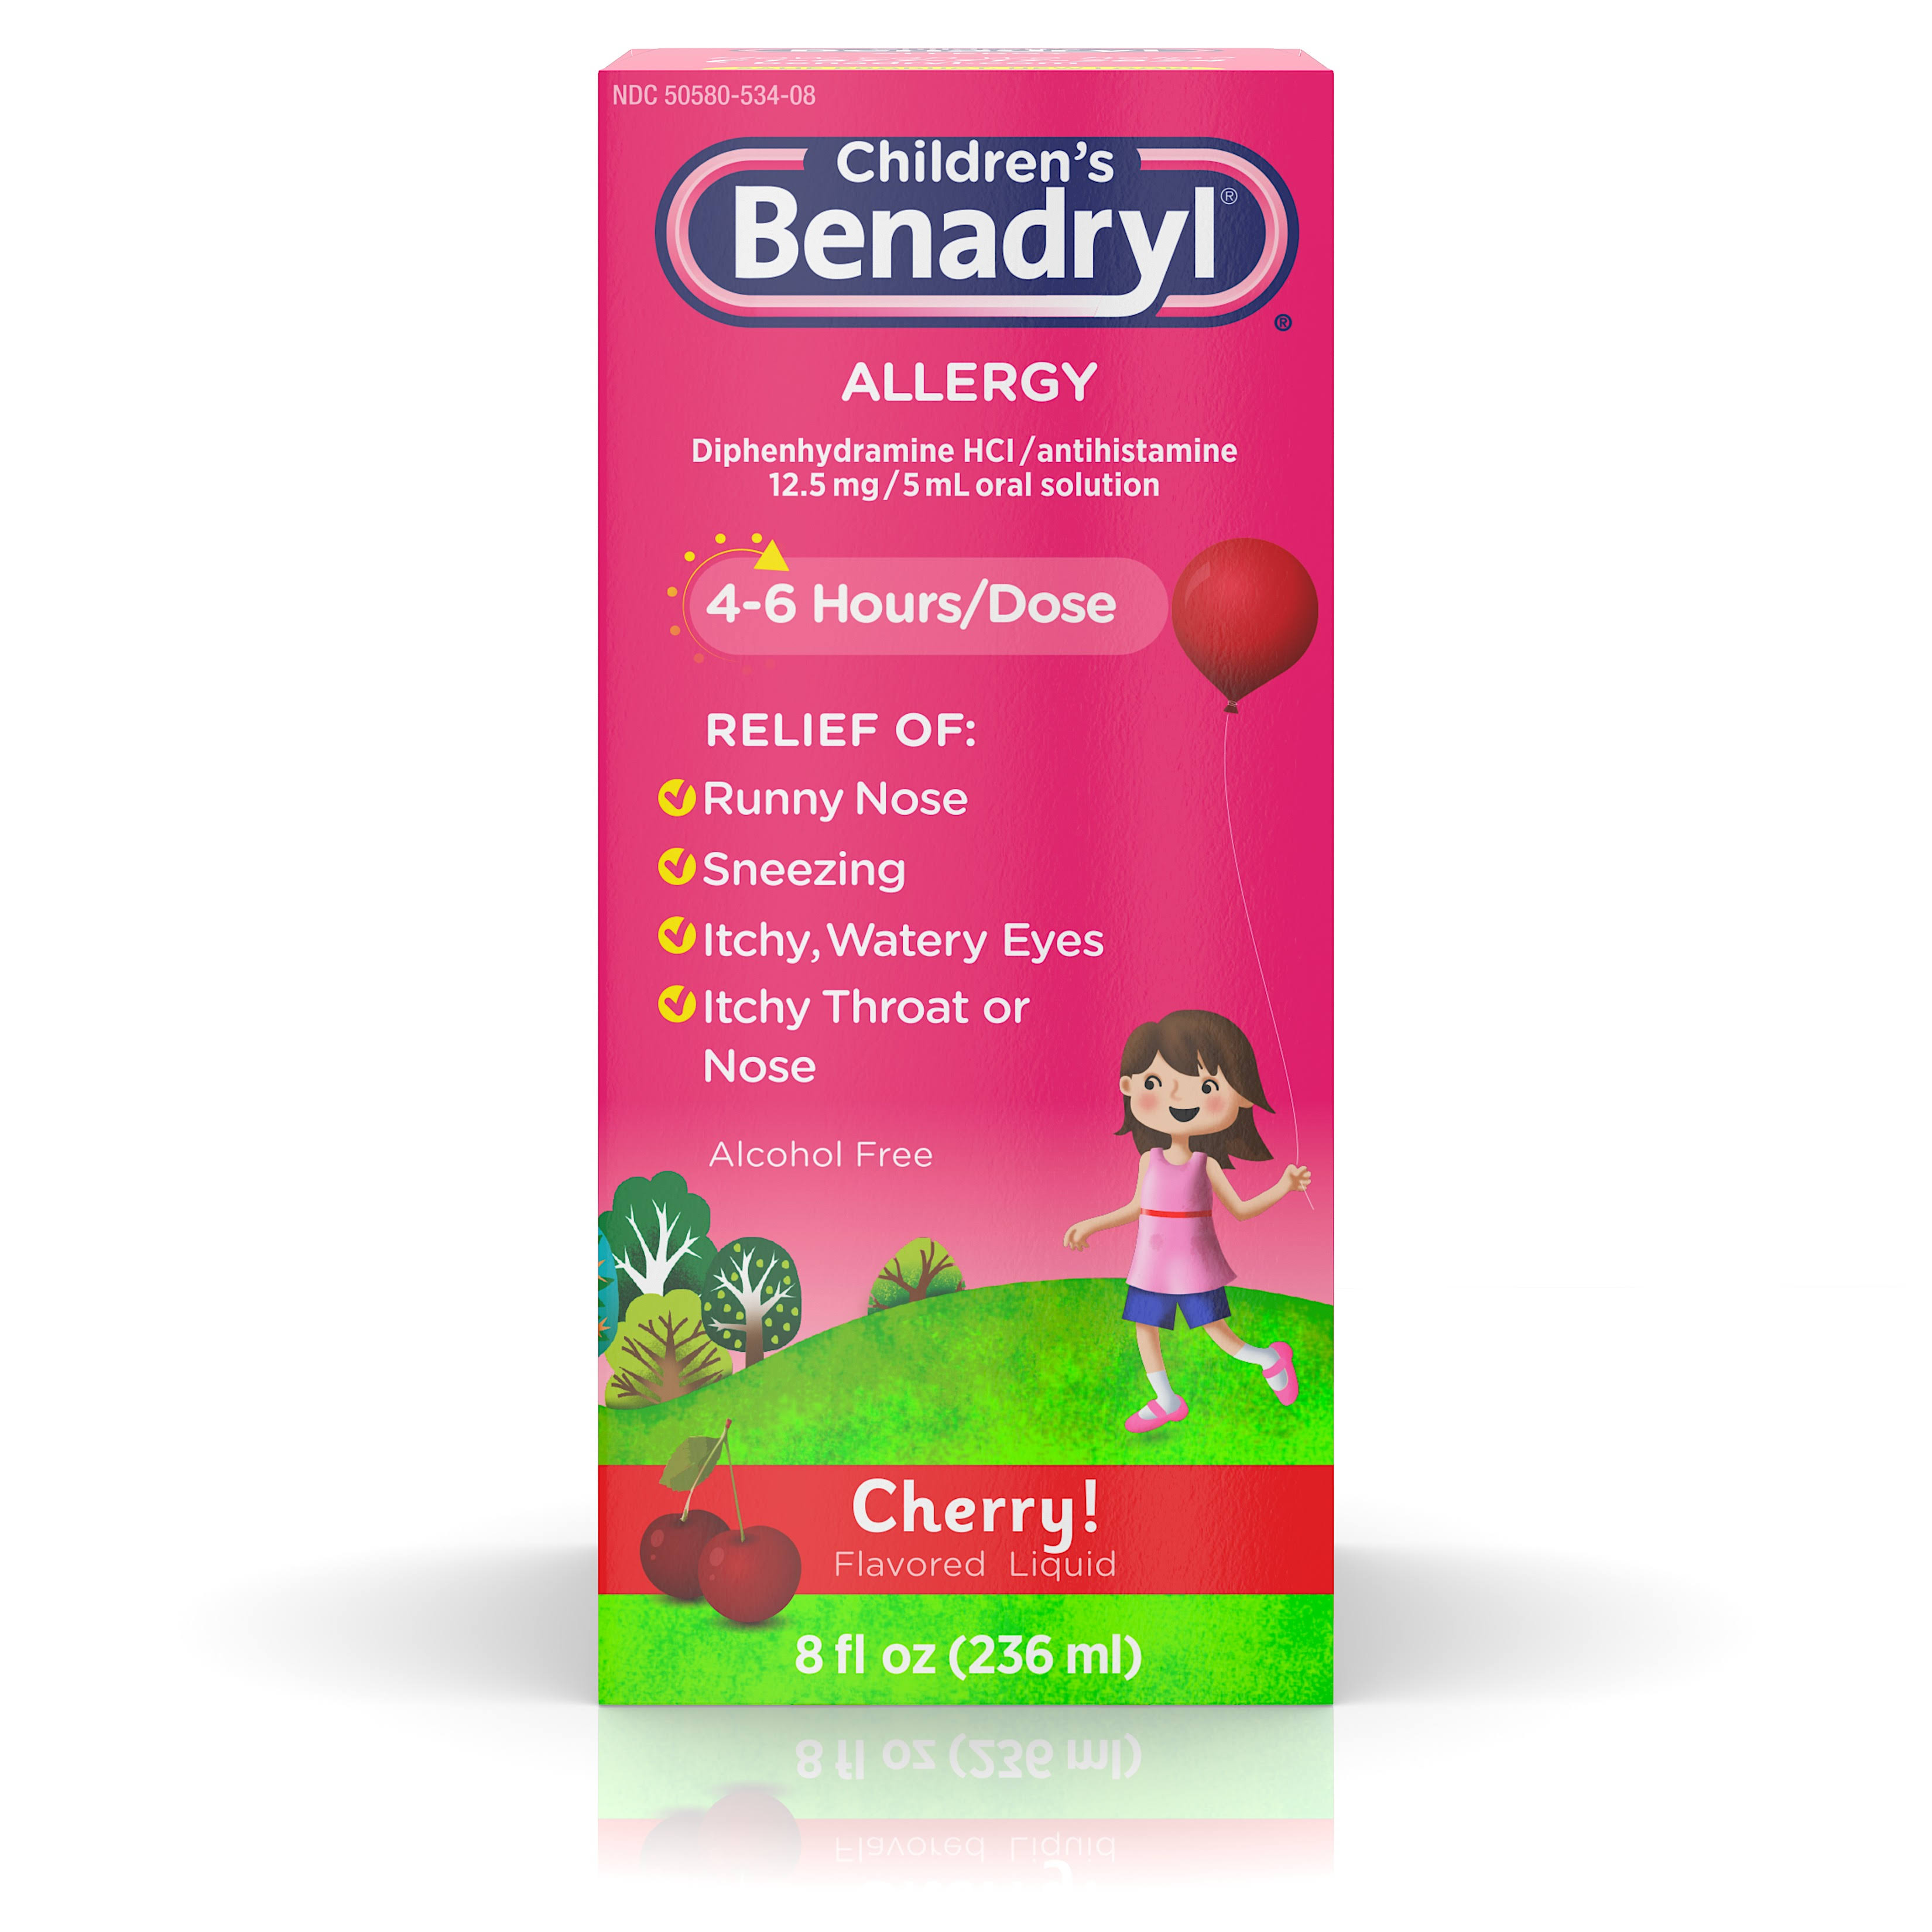 Benadryl Children's Oral Solution Alergy Relief - Cherry, 8oz